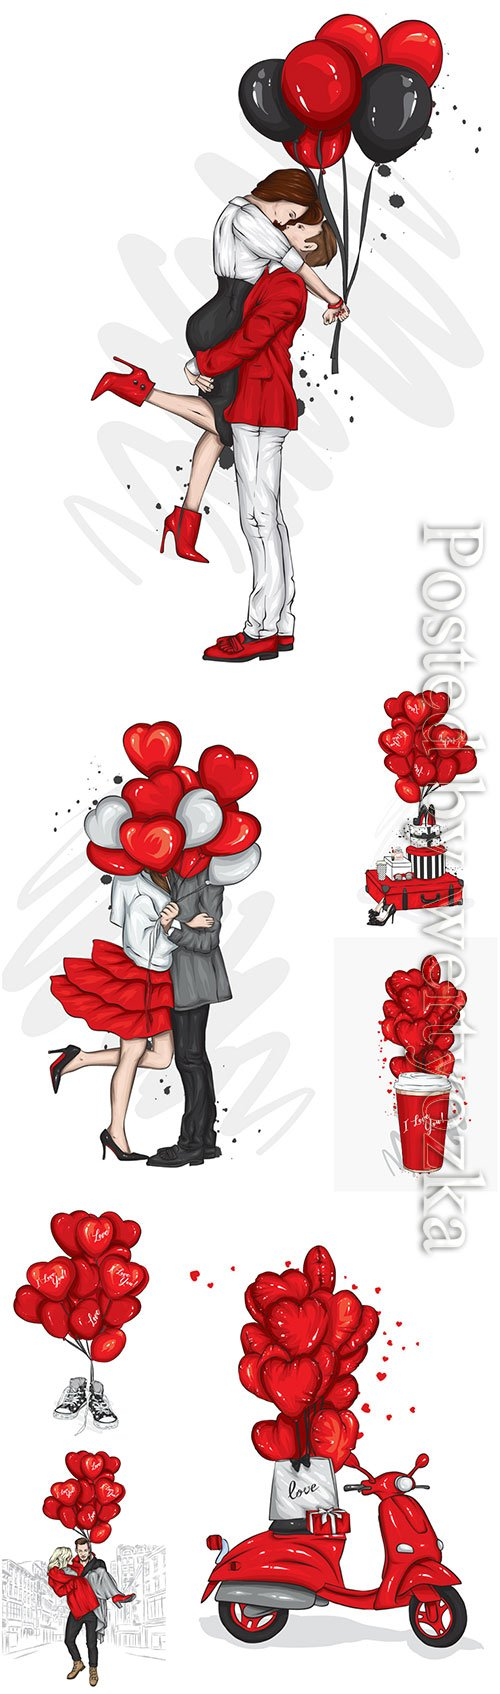 Loving couple with heart-shaped balloons